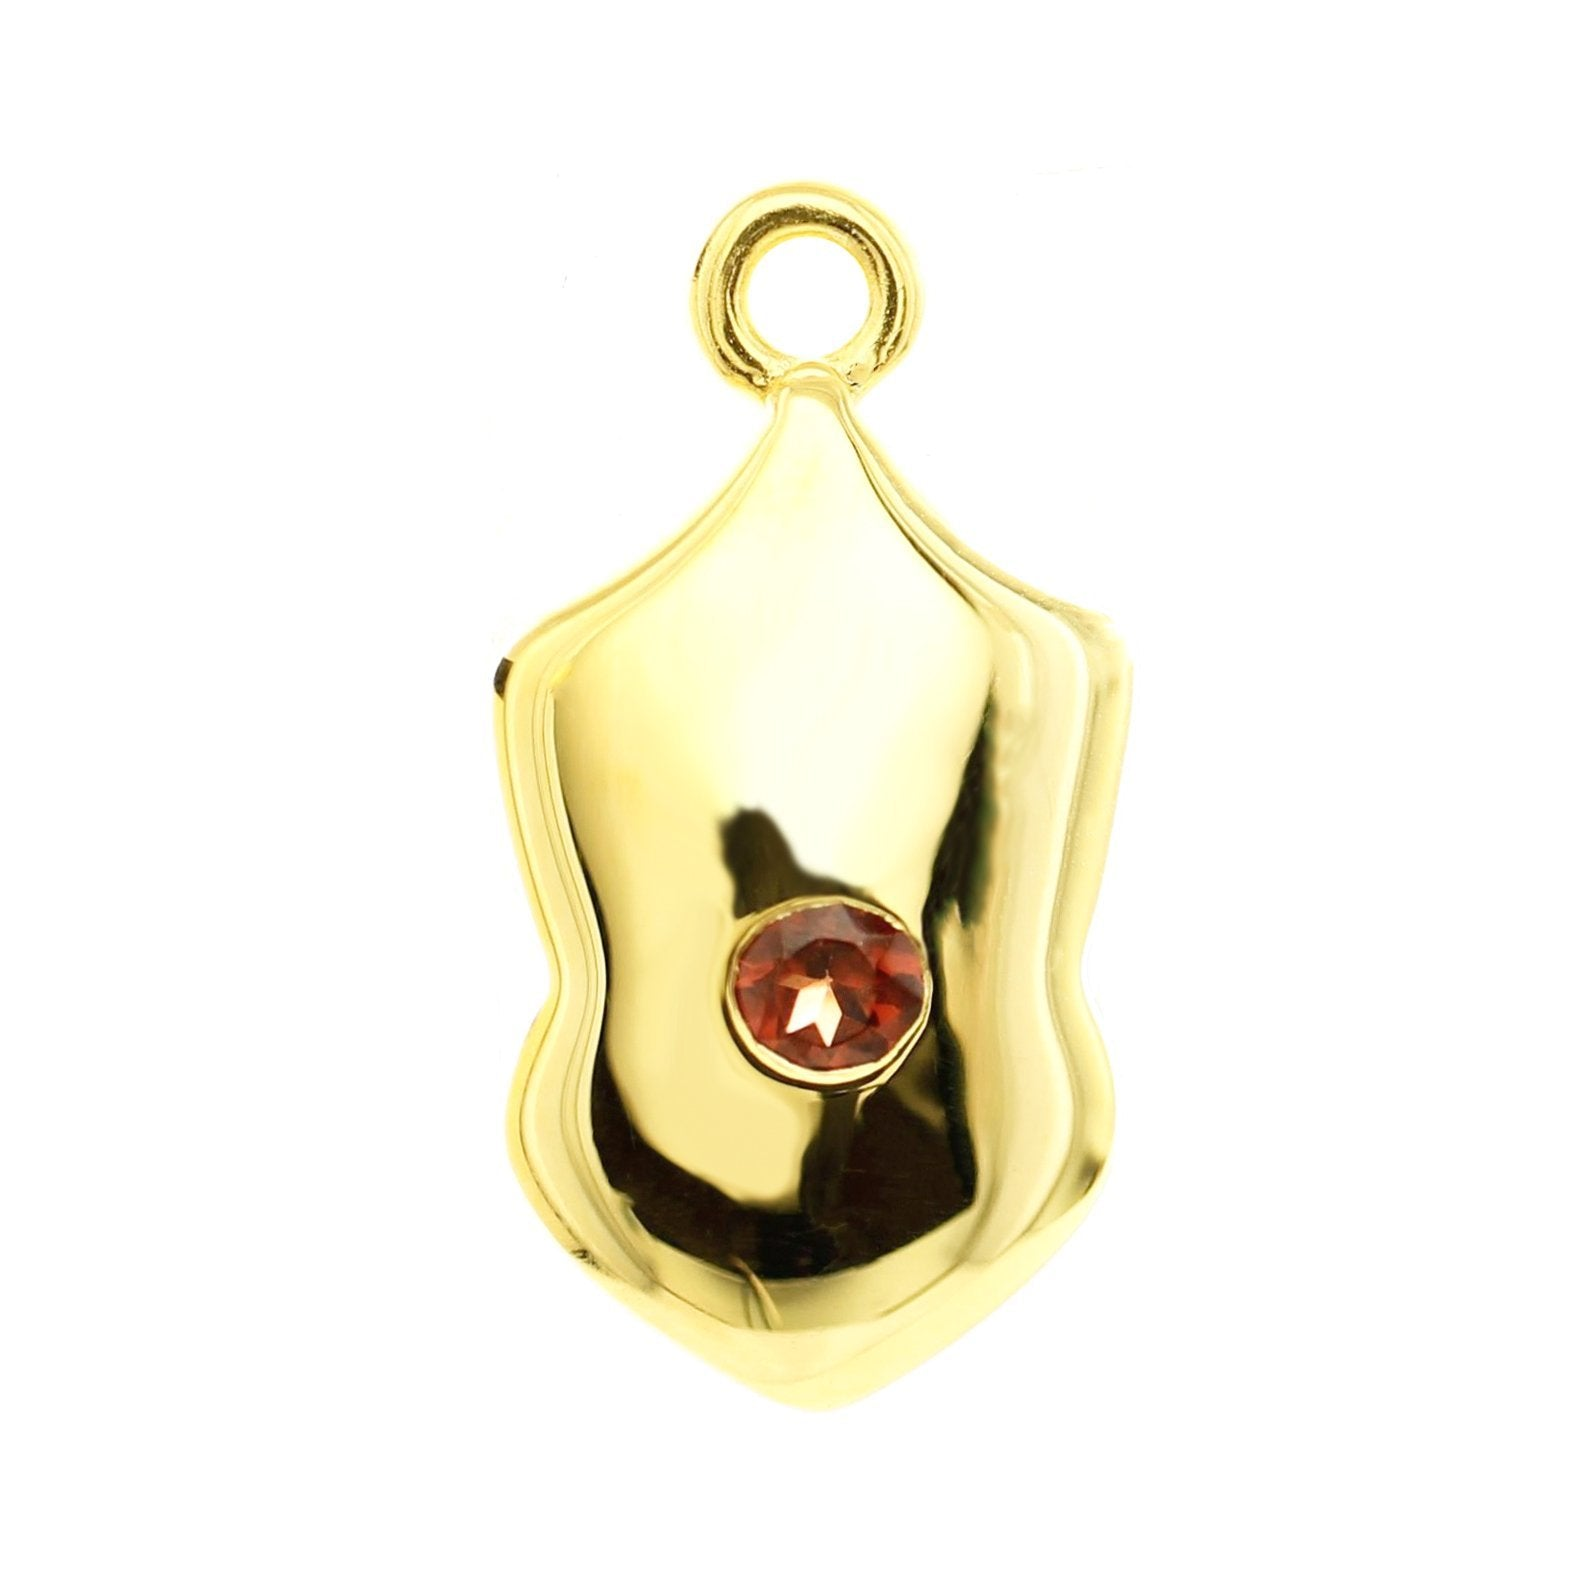 LEGACY JULY BIRTHSTONE SHIELD ICON - RUBY & GOLD - SO PRETTY CARA COTTER